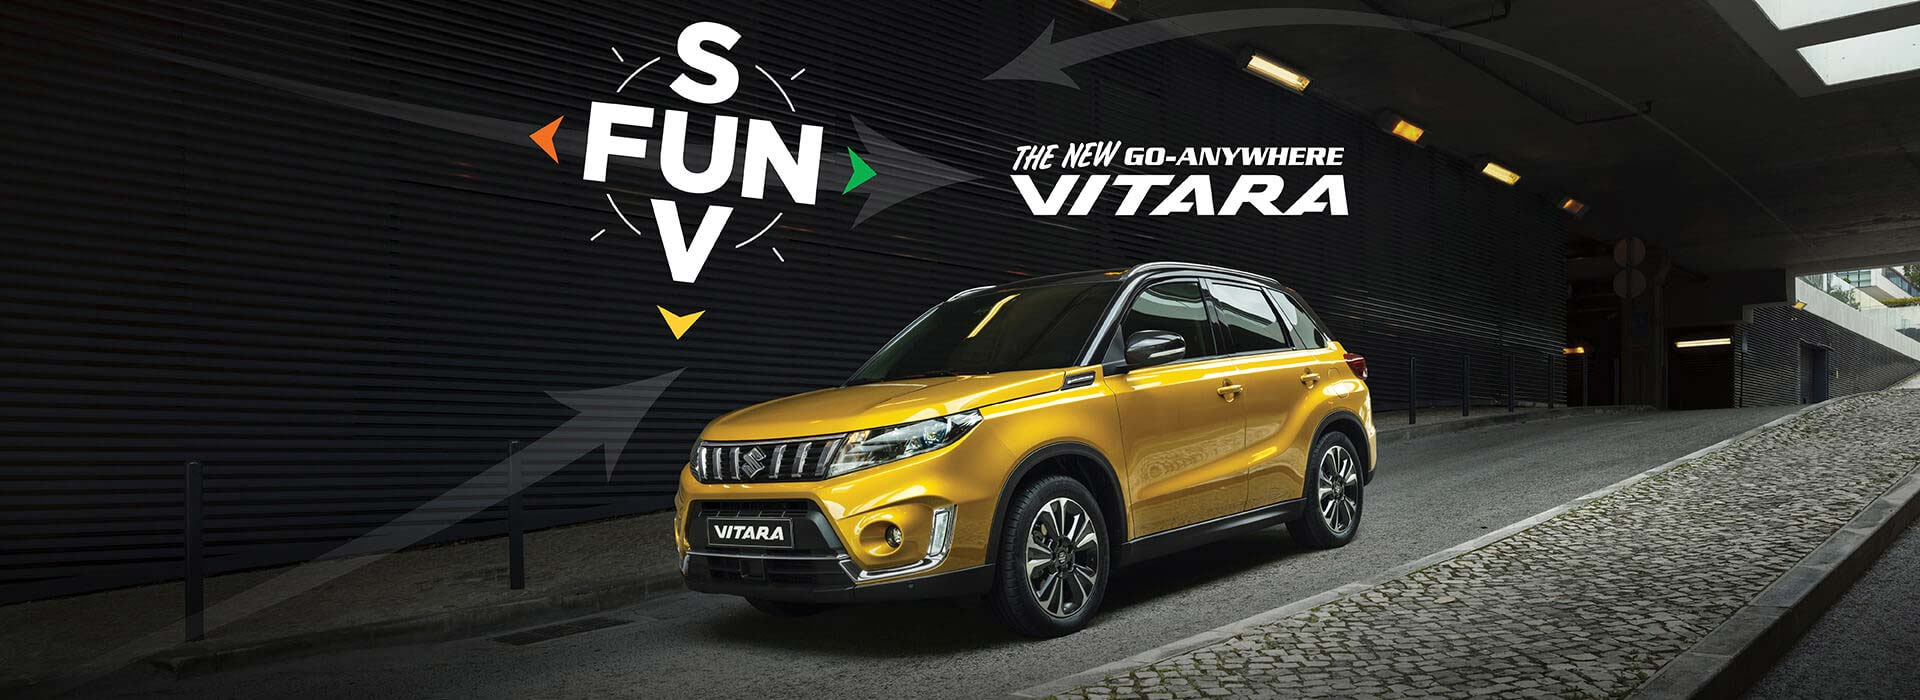 New Go-Anywhere Vitara